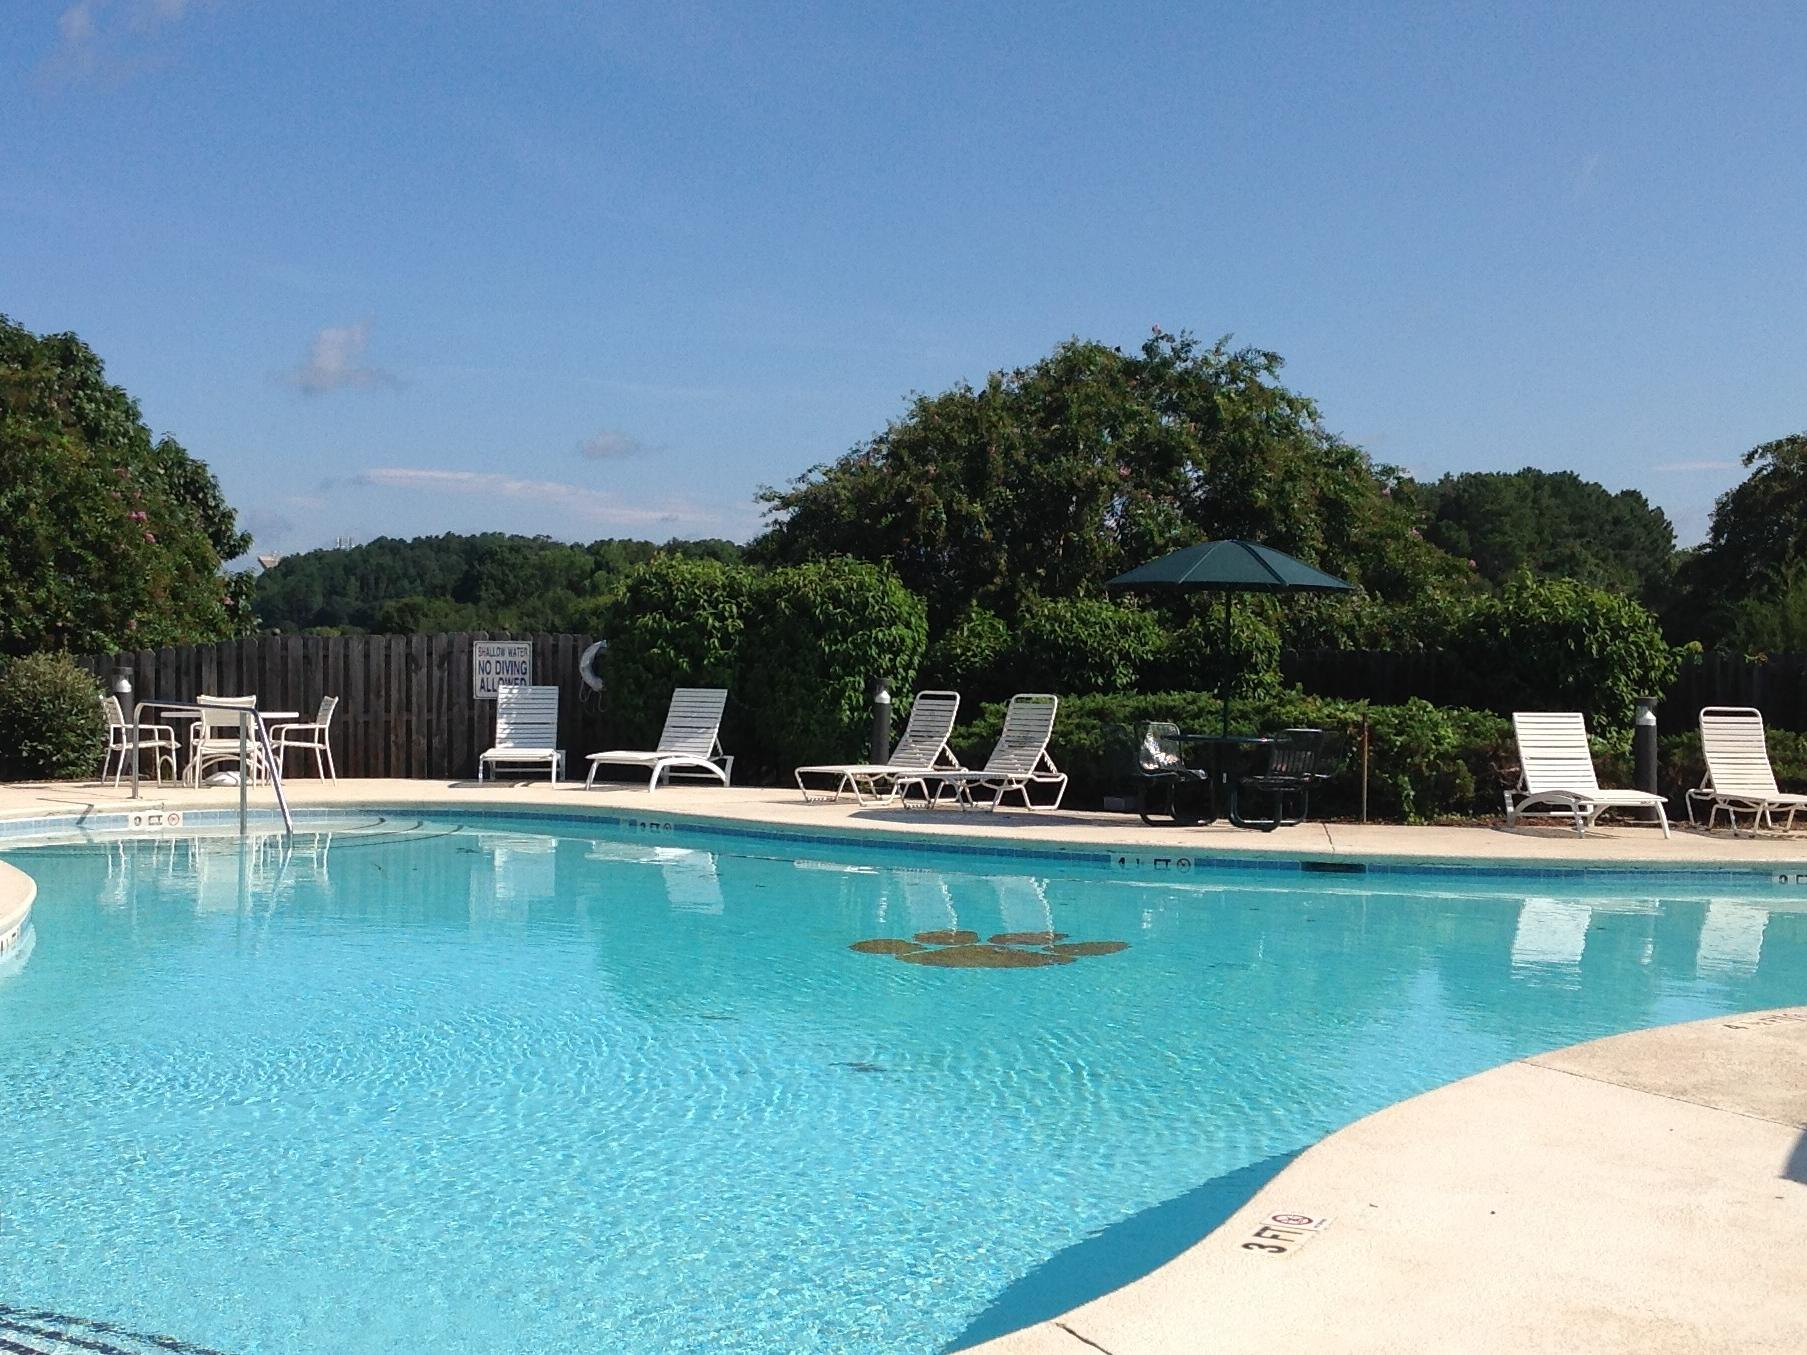 View of pool and chairs